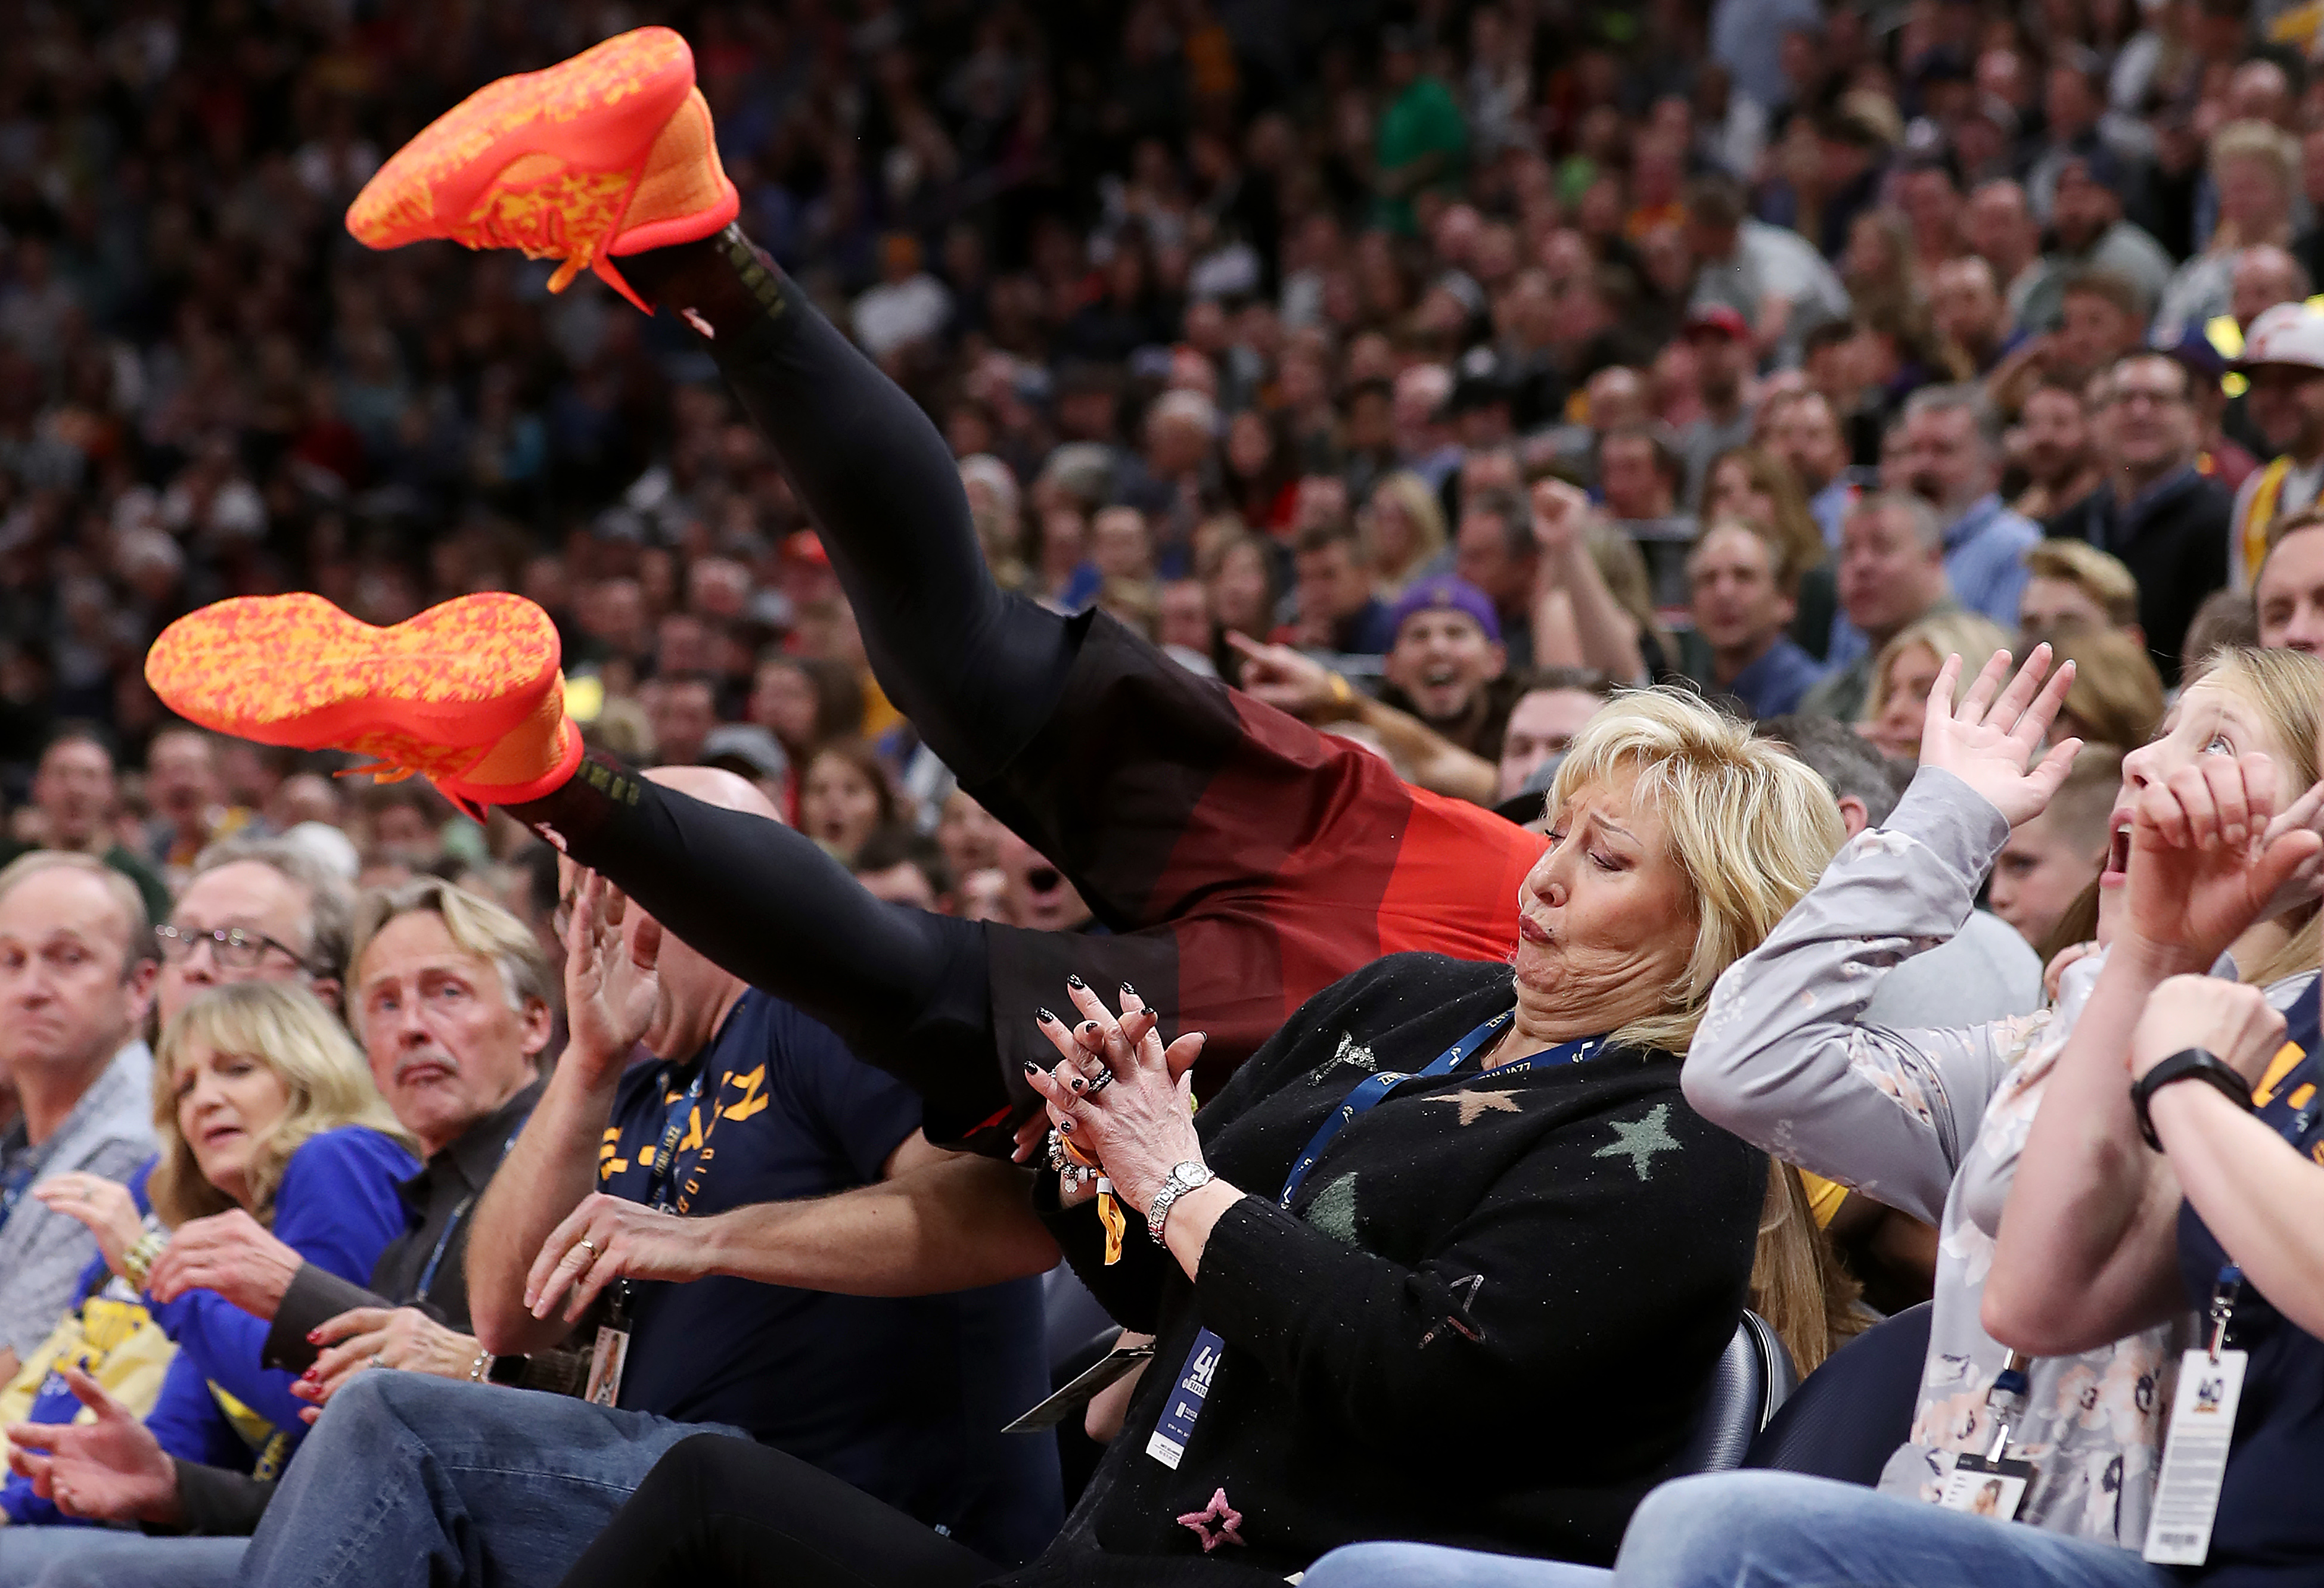 Utah Jazz guard Donovan Mitchell (45) crashes into the front two rows as the Utah Jazz and the Golden State Warriors play an NBA basketball game at Vivint Smart Home Arena in Salt Lake City on Wednesday, Dec. 19, 2018. Jazz won 108-103.